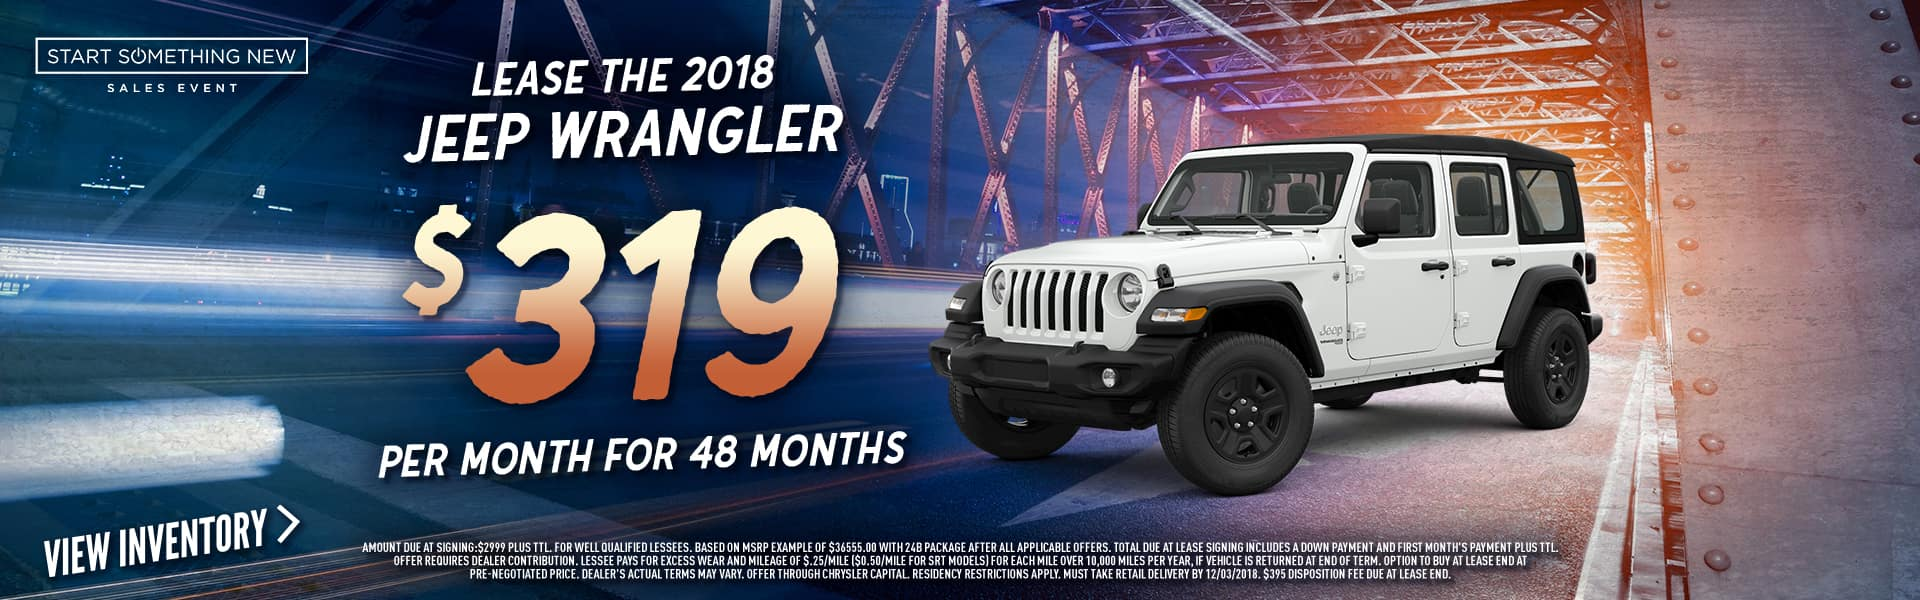 beaumont-tx-for-sale-2018-jeep-wrangler